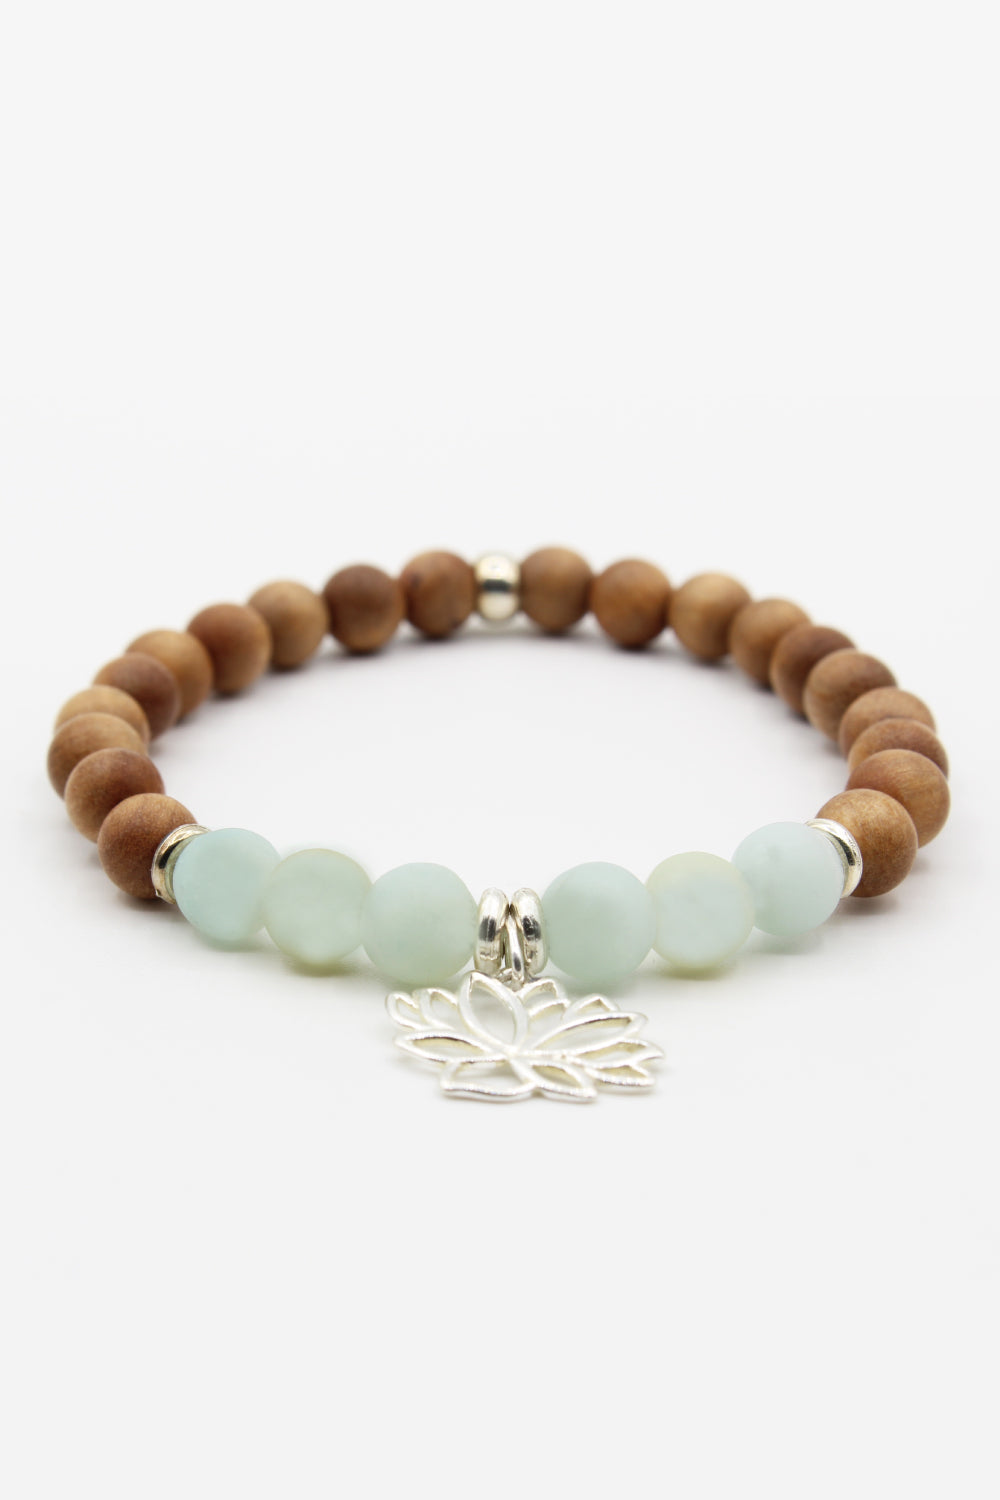 Self-Growth Amazonite Mala Bracelet